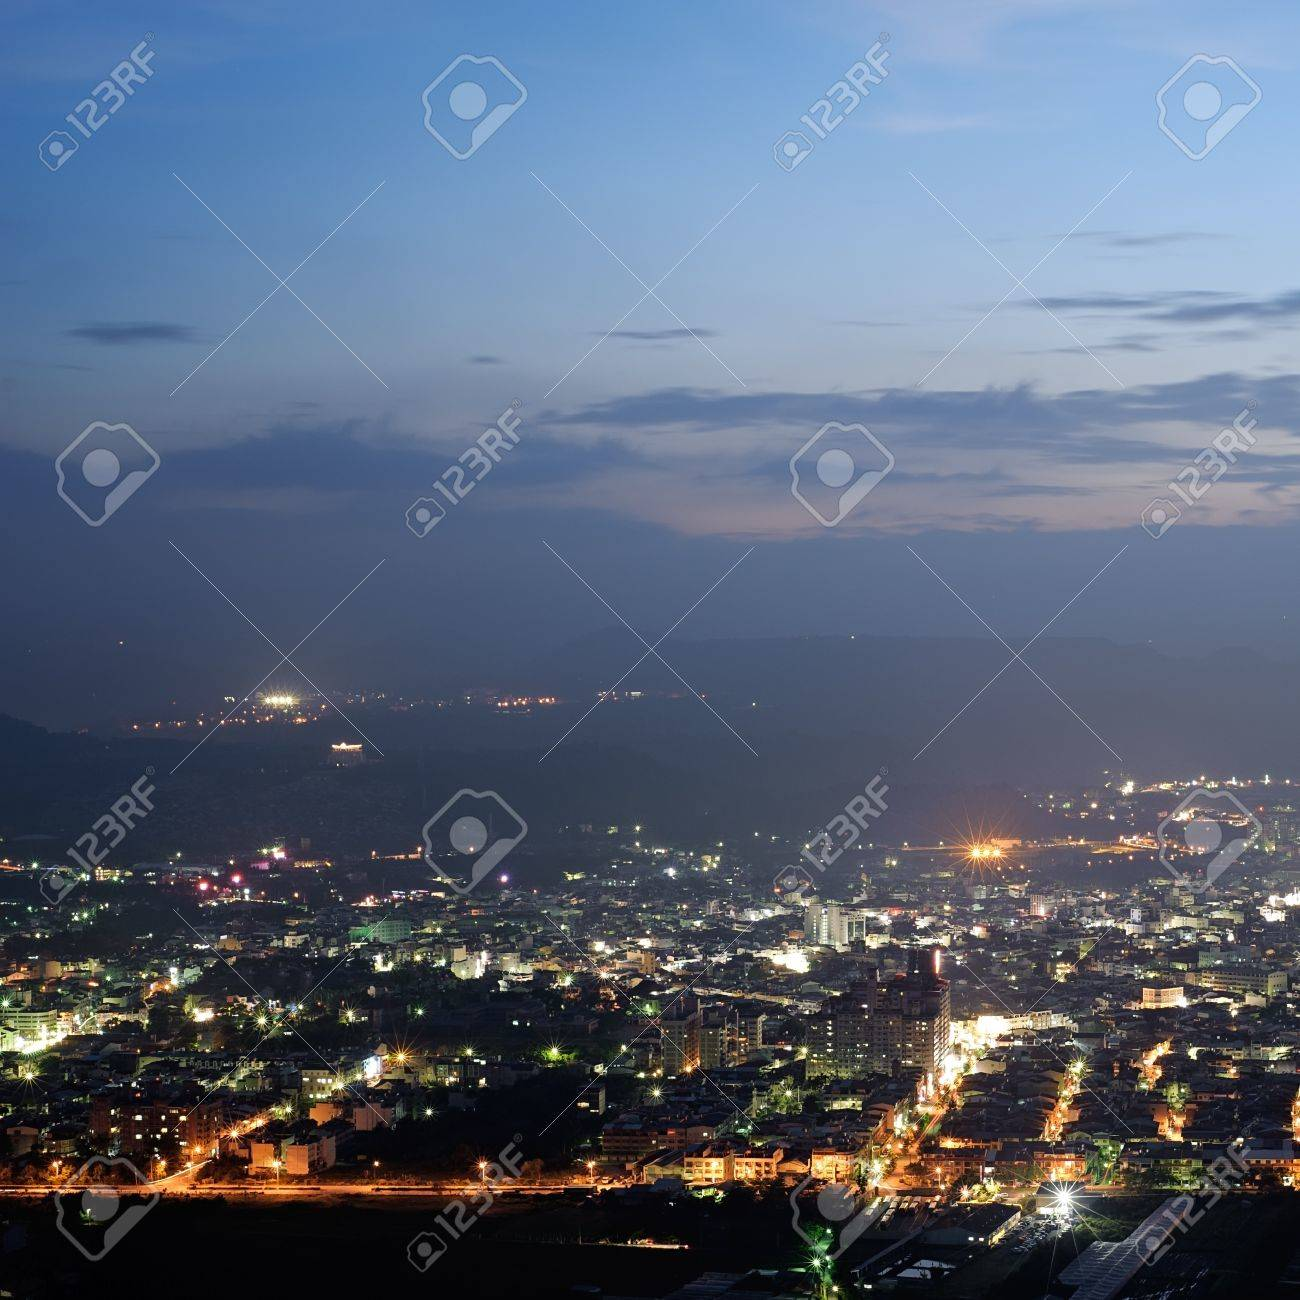 Cityscape of night scenery with houses and buildings under blue sky in Puli township, Nantou County, Taiwan, Asia. Stock Photo - 9647482